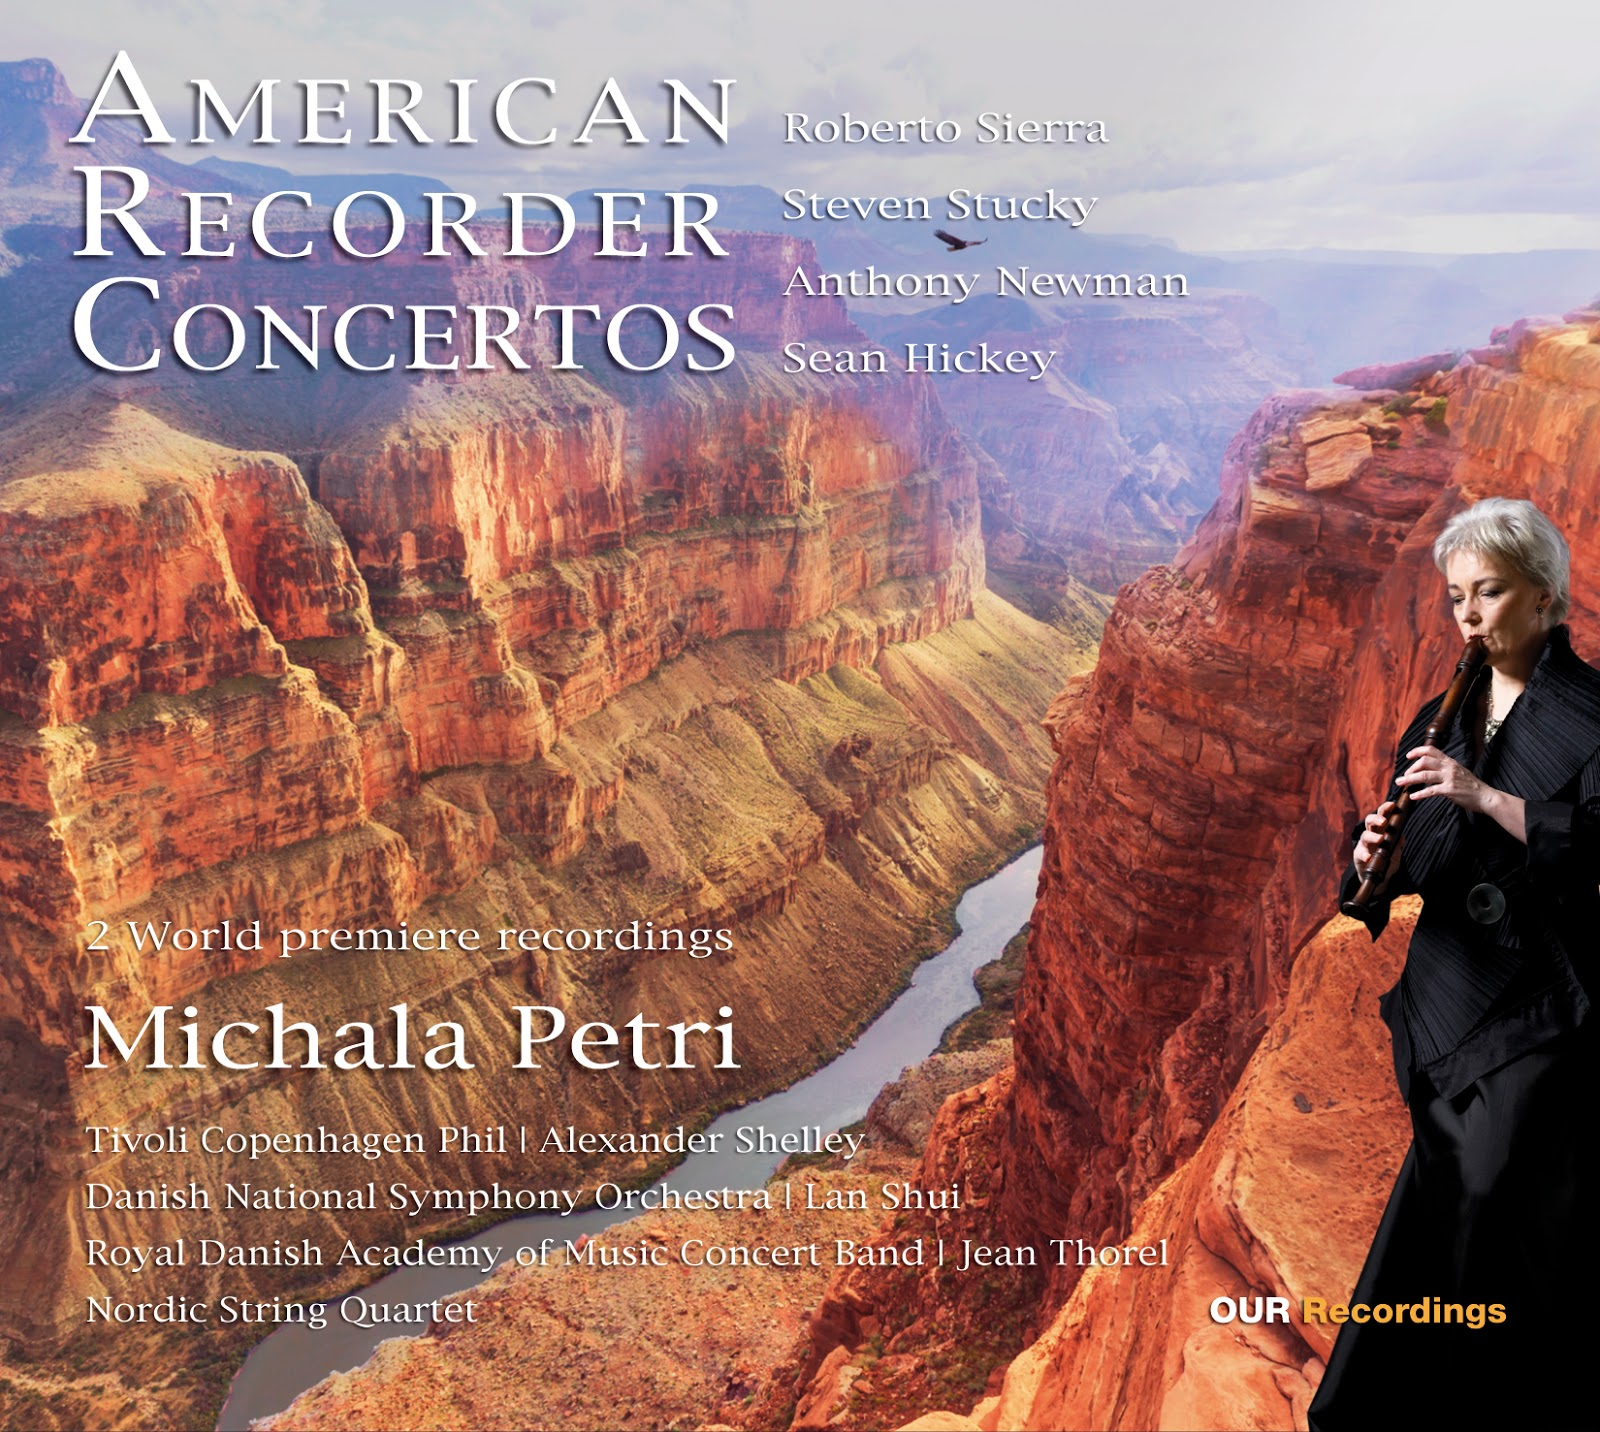 762b85bc33c Music is the key: Michala Petri AMERICAN RECORDER CONCERTOS